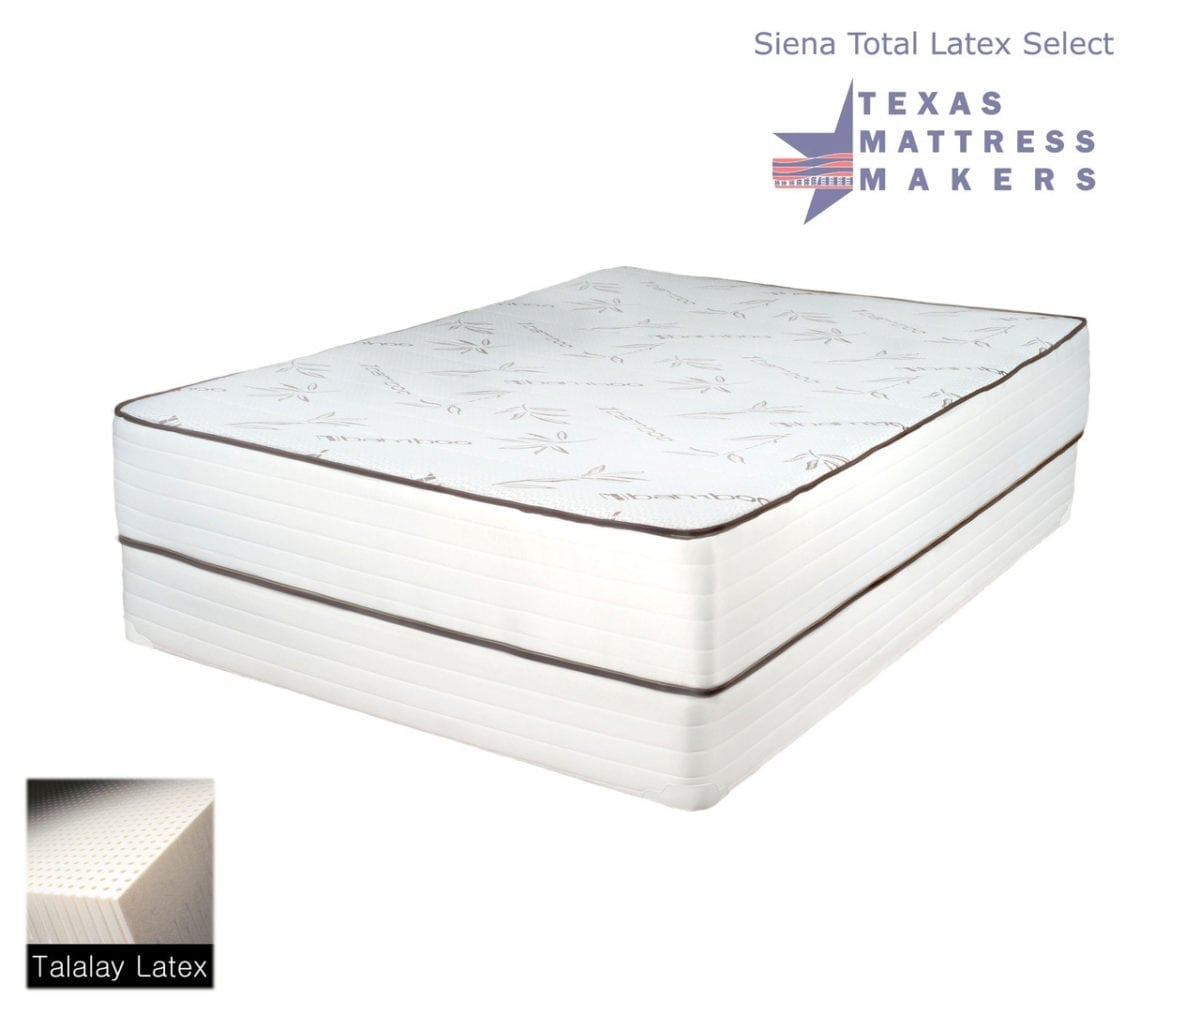 Siena Total Latex Select Mattress - Texas Mattress Makers